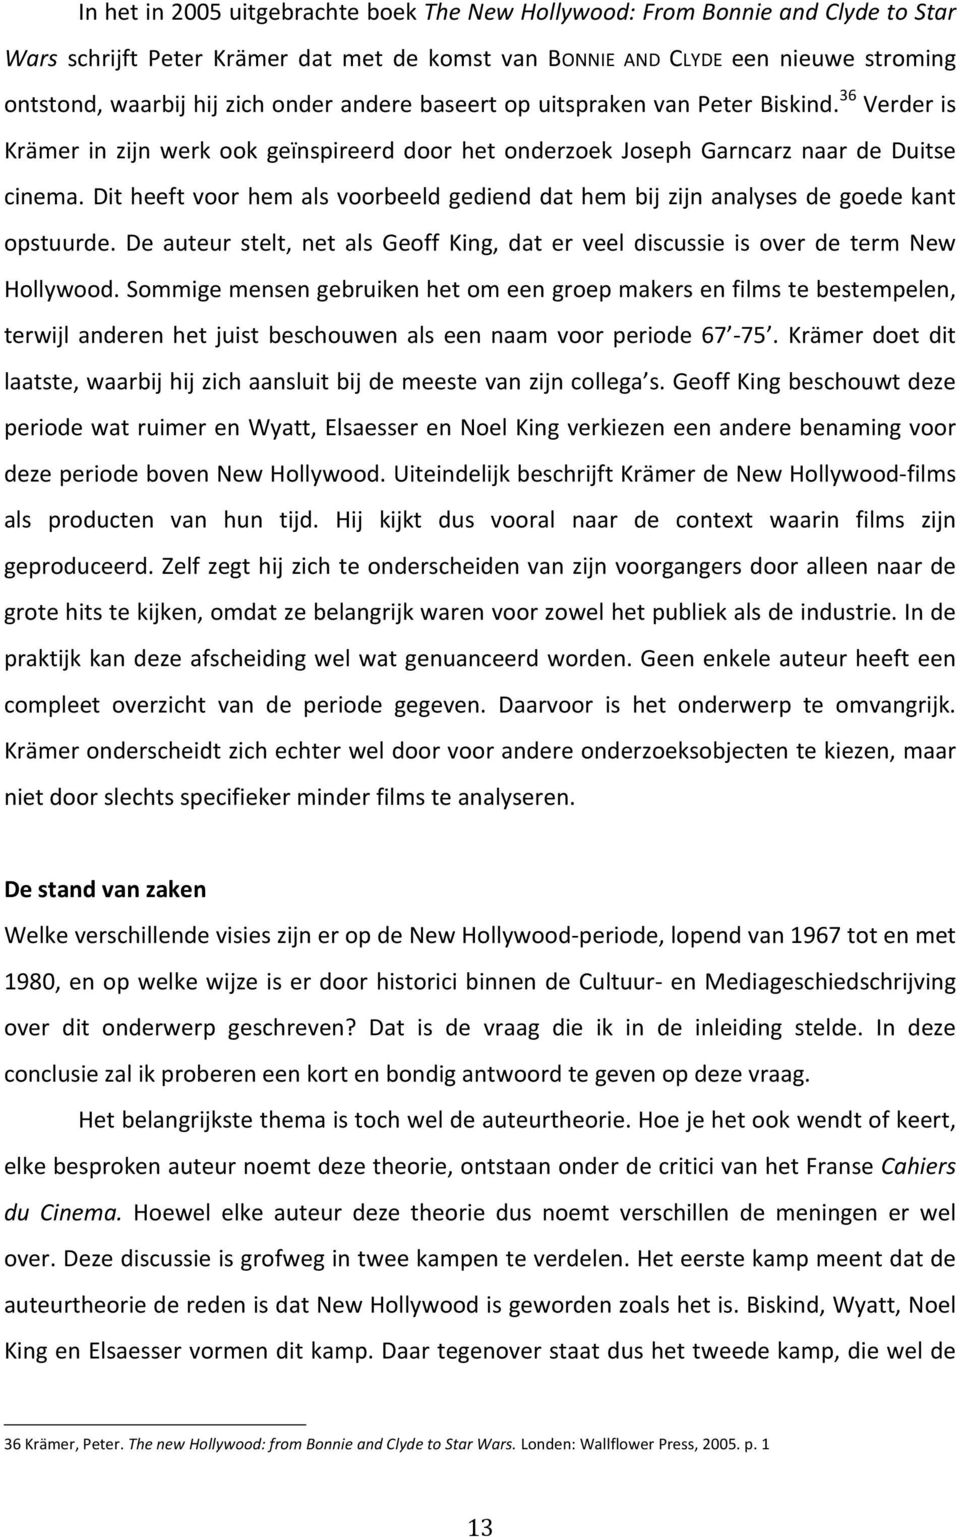 Dit heeft voor hem als voorbeeld gediend dat hem bij zijn analyses de goede kant opstuurde. De auteur stelt, net als Geoff King, dat er veel discussie is over de term New Hollywood.